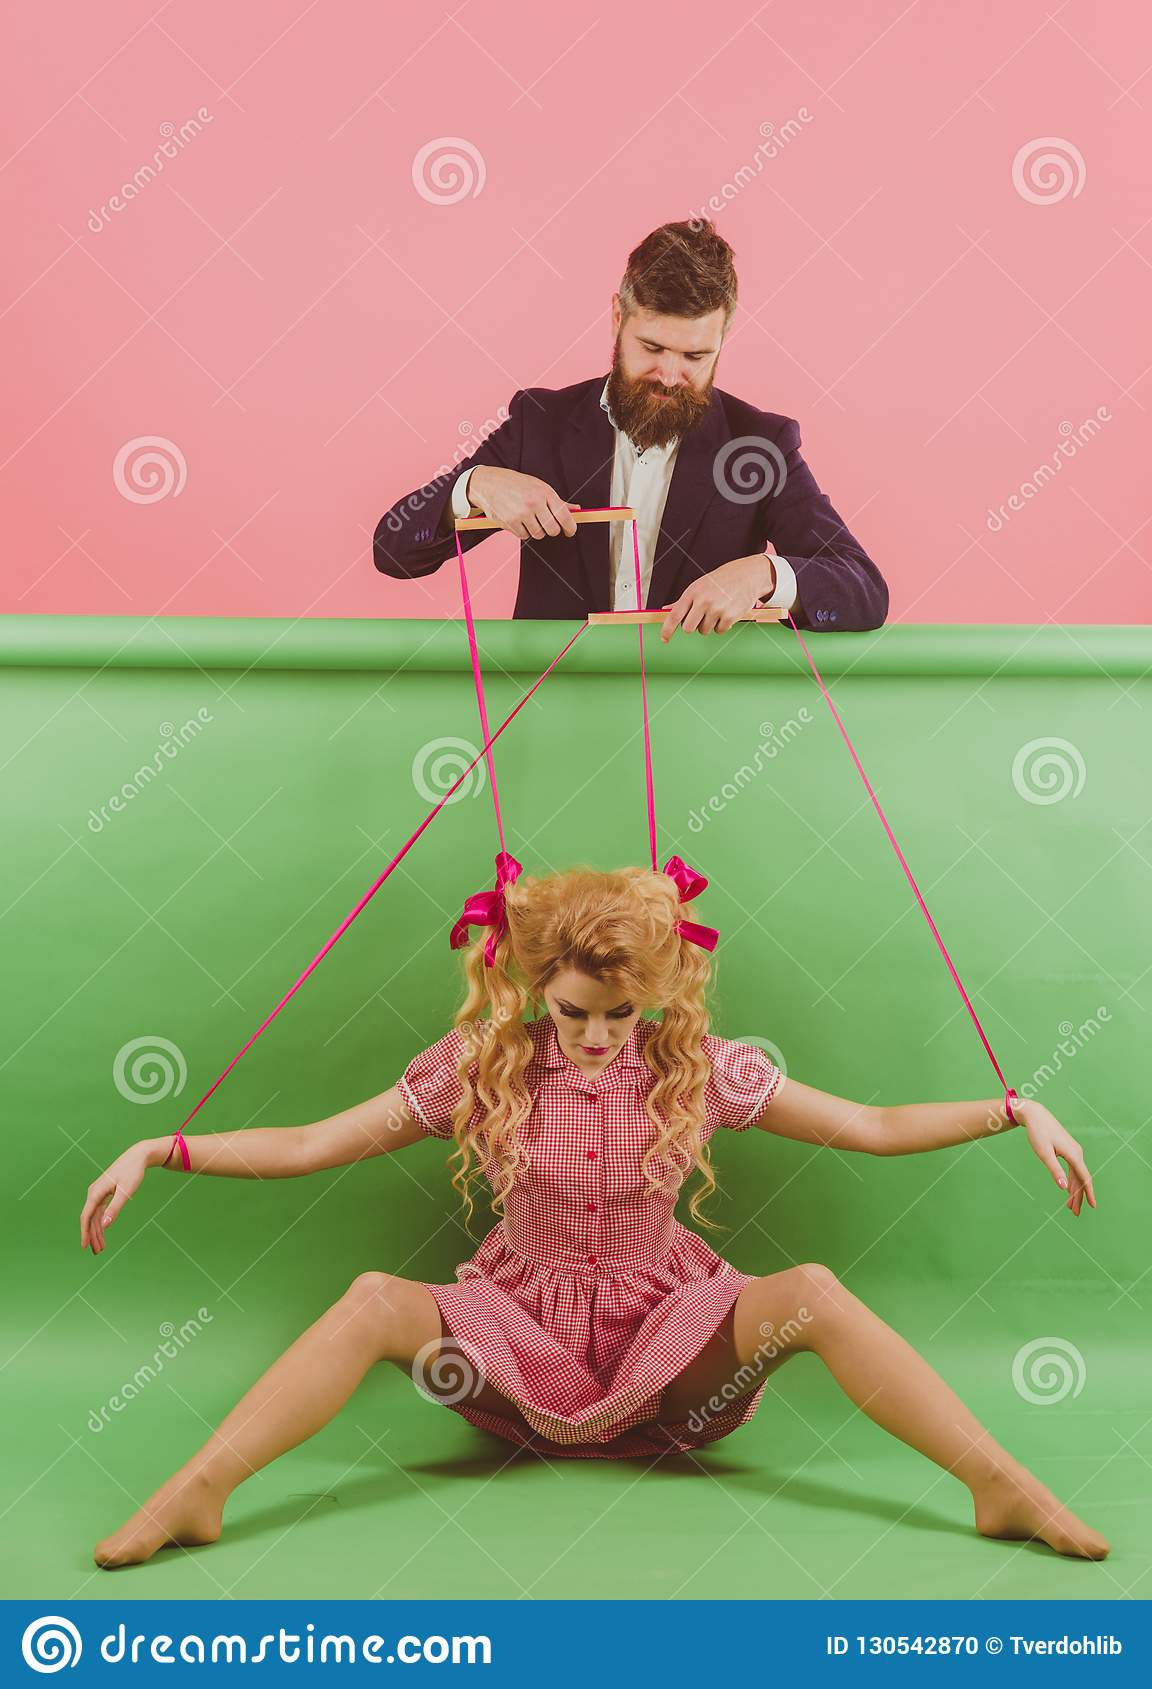 Holidays and doll. dominance and dependence. vintage fashion woman puppet and man. Creative idea. Love. retro girl and